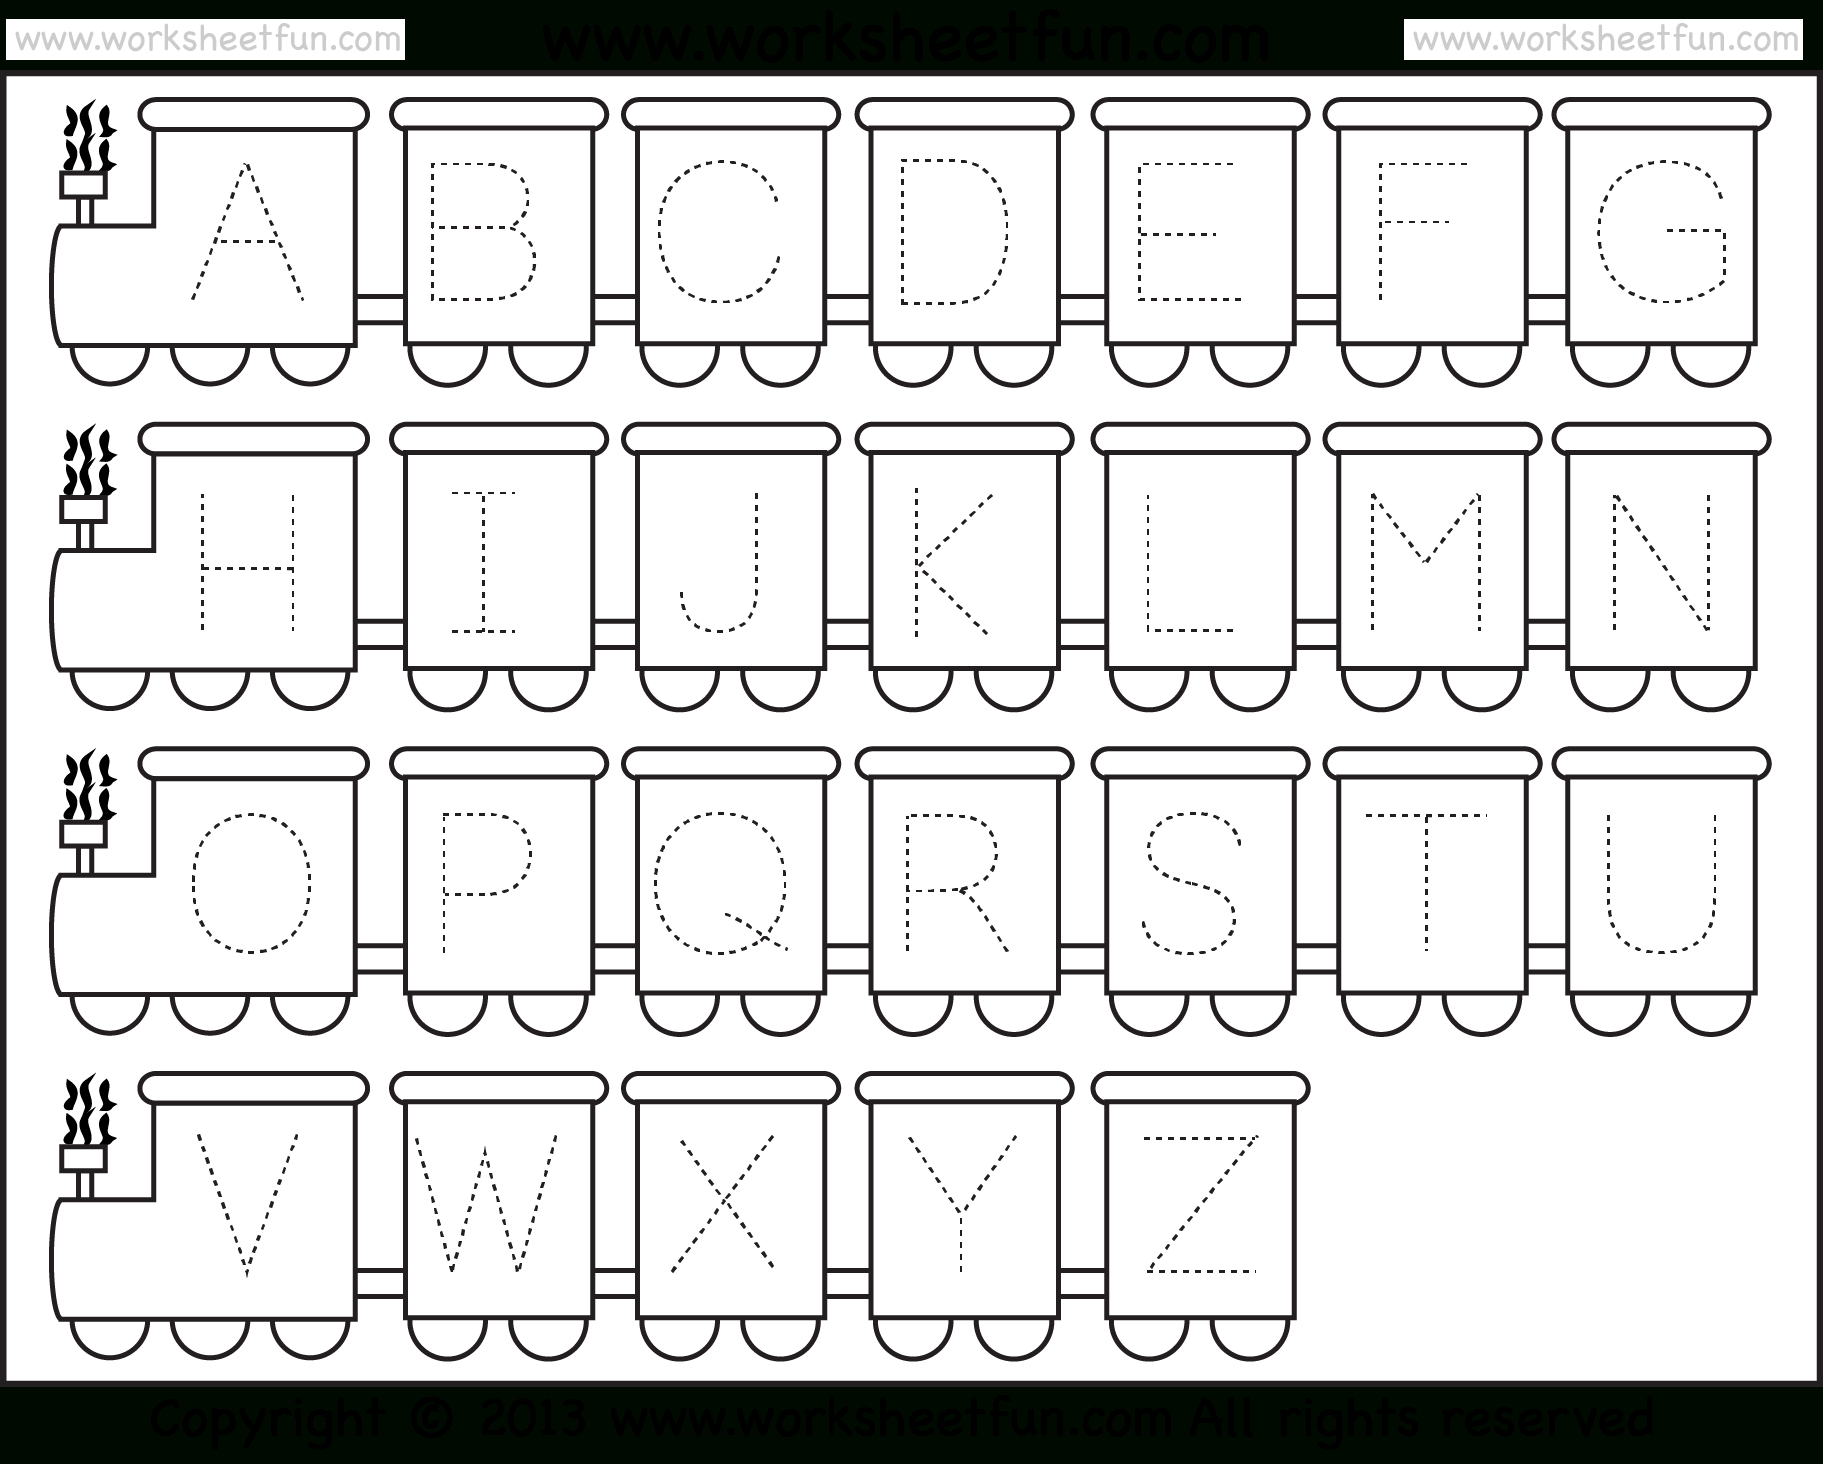 Letter Tracing Worksheet – Train Theme / Free Printable Worksheets   Letter Tracing Worksheets Free Printable